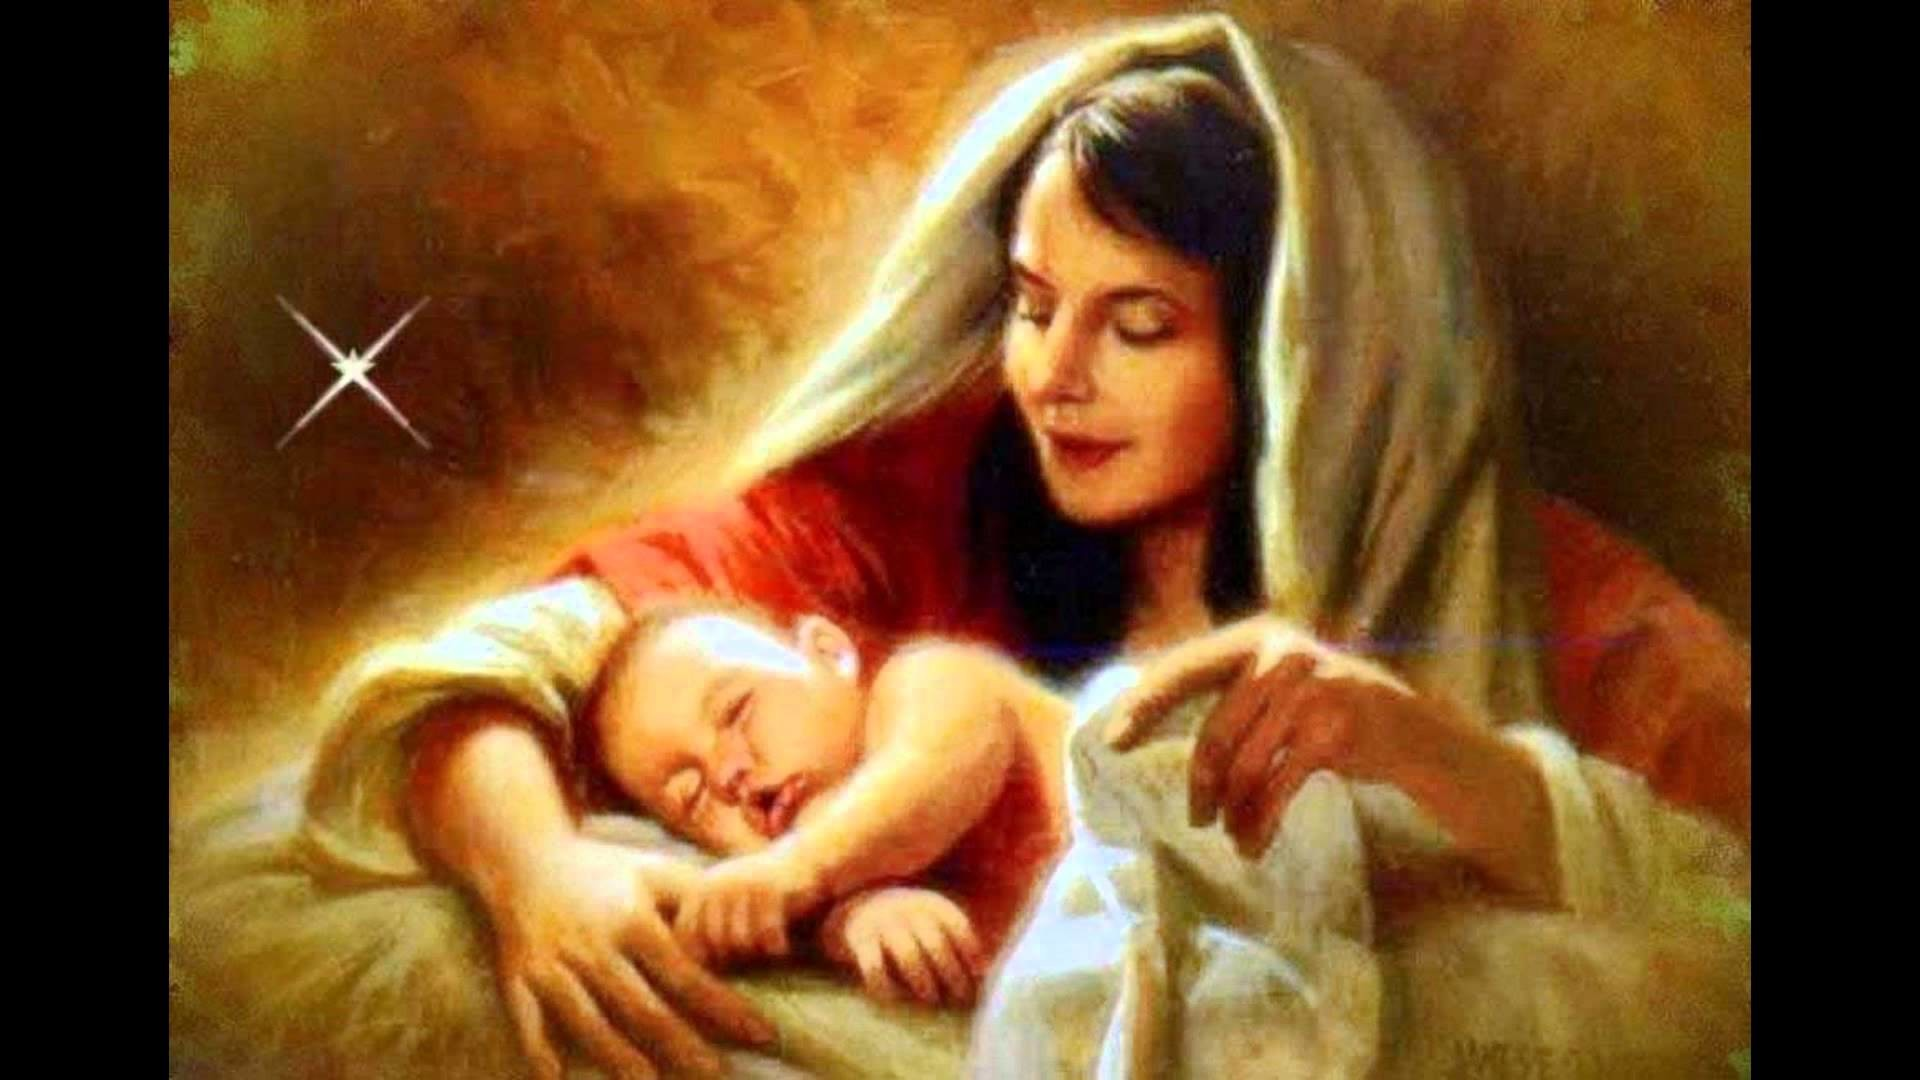 Mother Mary Wallpaper 53 images 1920x1080